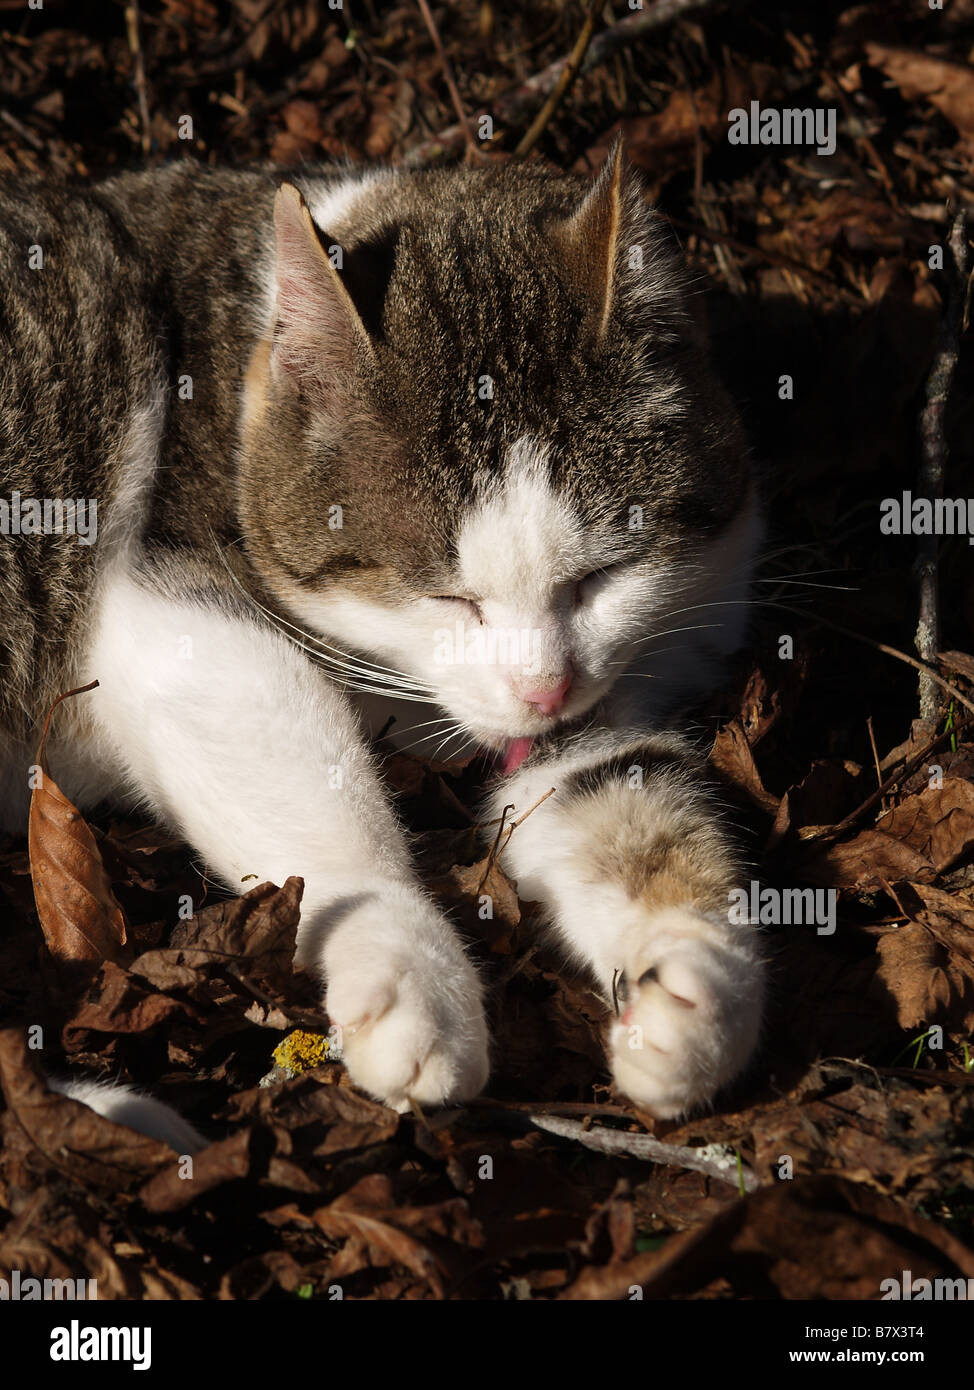 A cat lapping himself - Stock Image